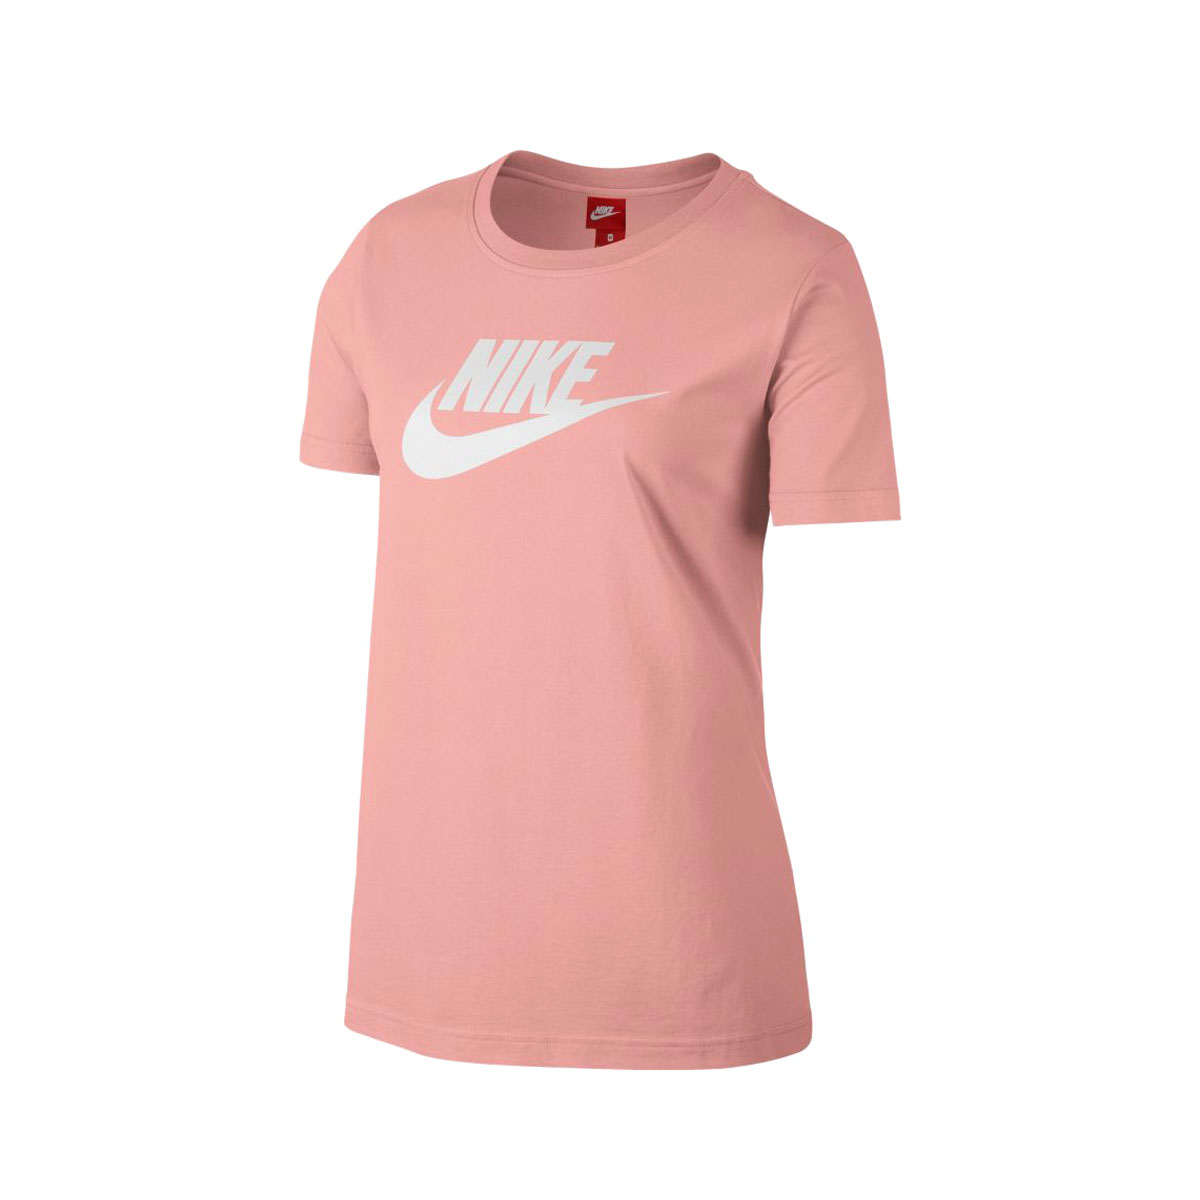 ab0d6090a Categories. « All Categories · Women's Clothing · Tops · T-shirts · NIKE AS W  NSW ...